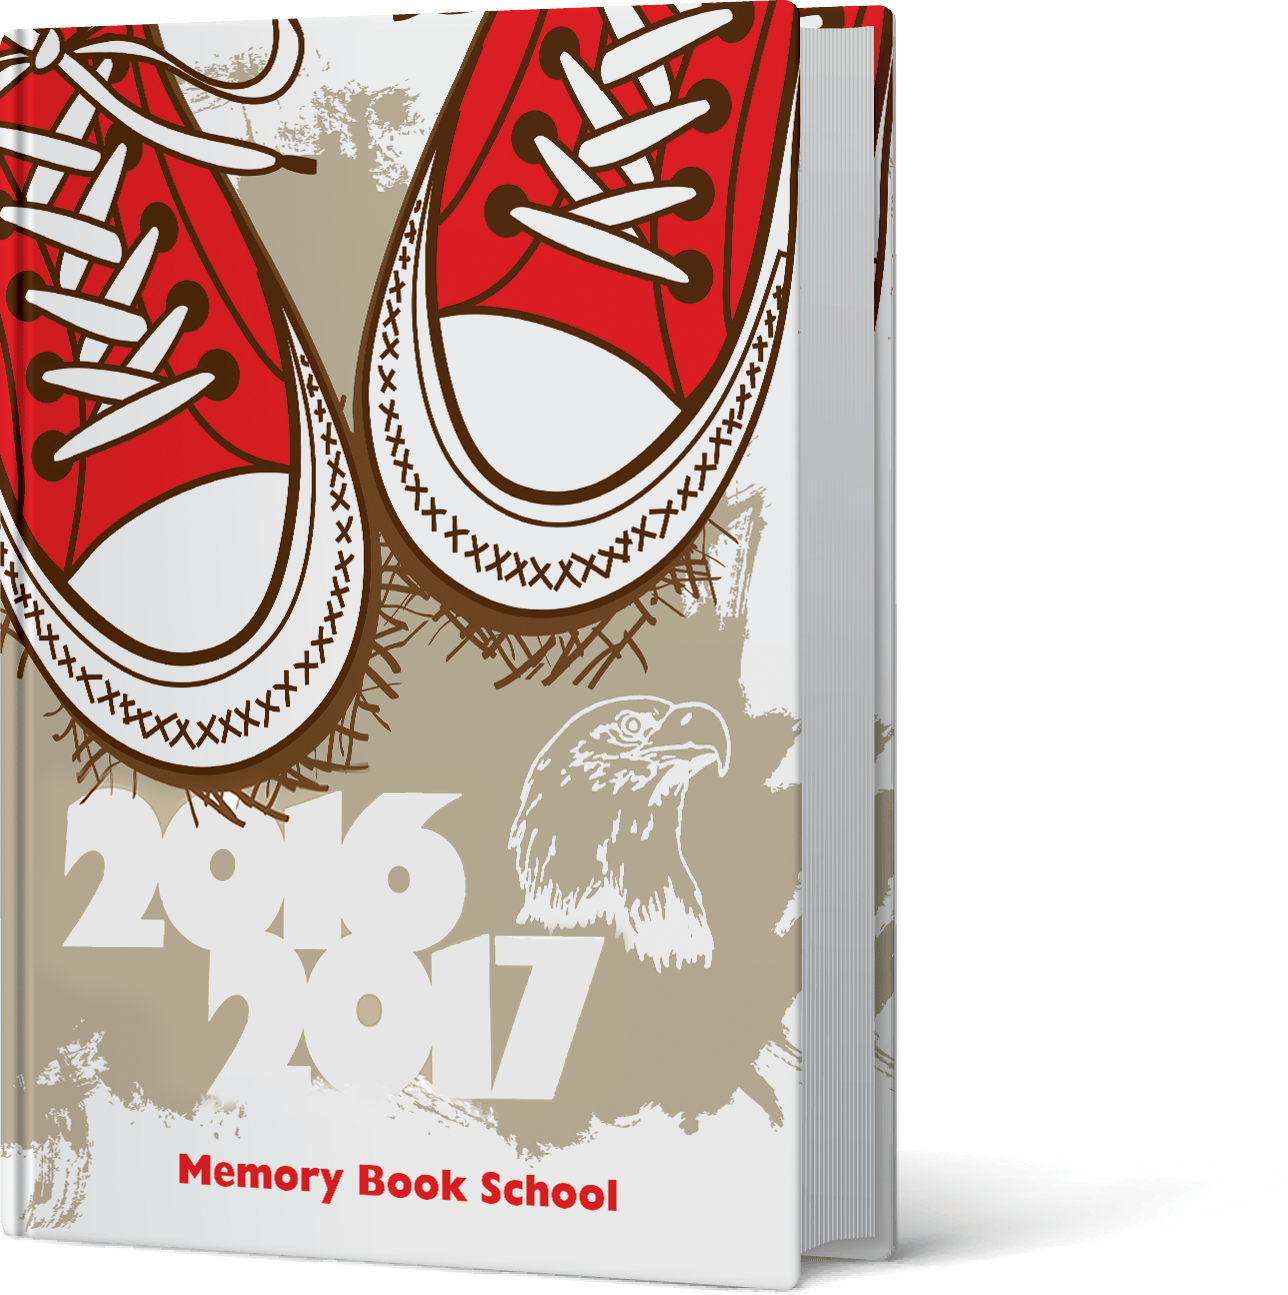 High School Book Cover Ideas ~ Custom school yearbook covers customization